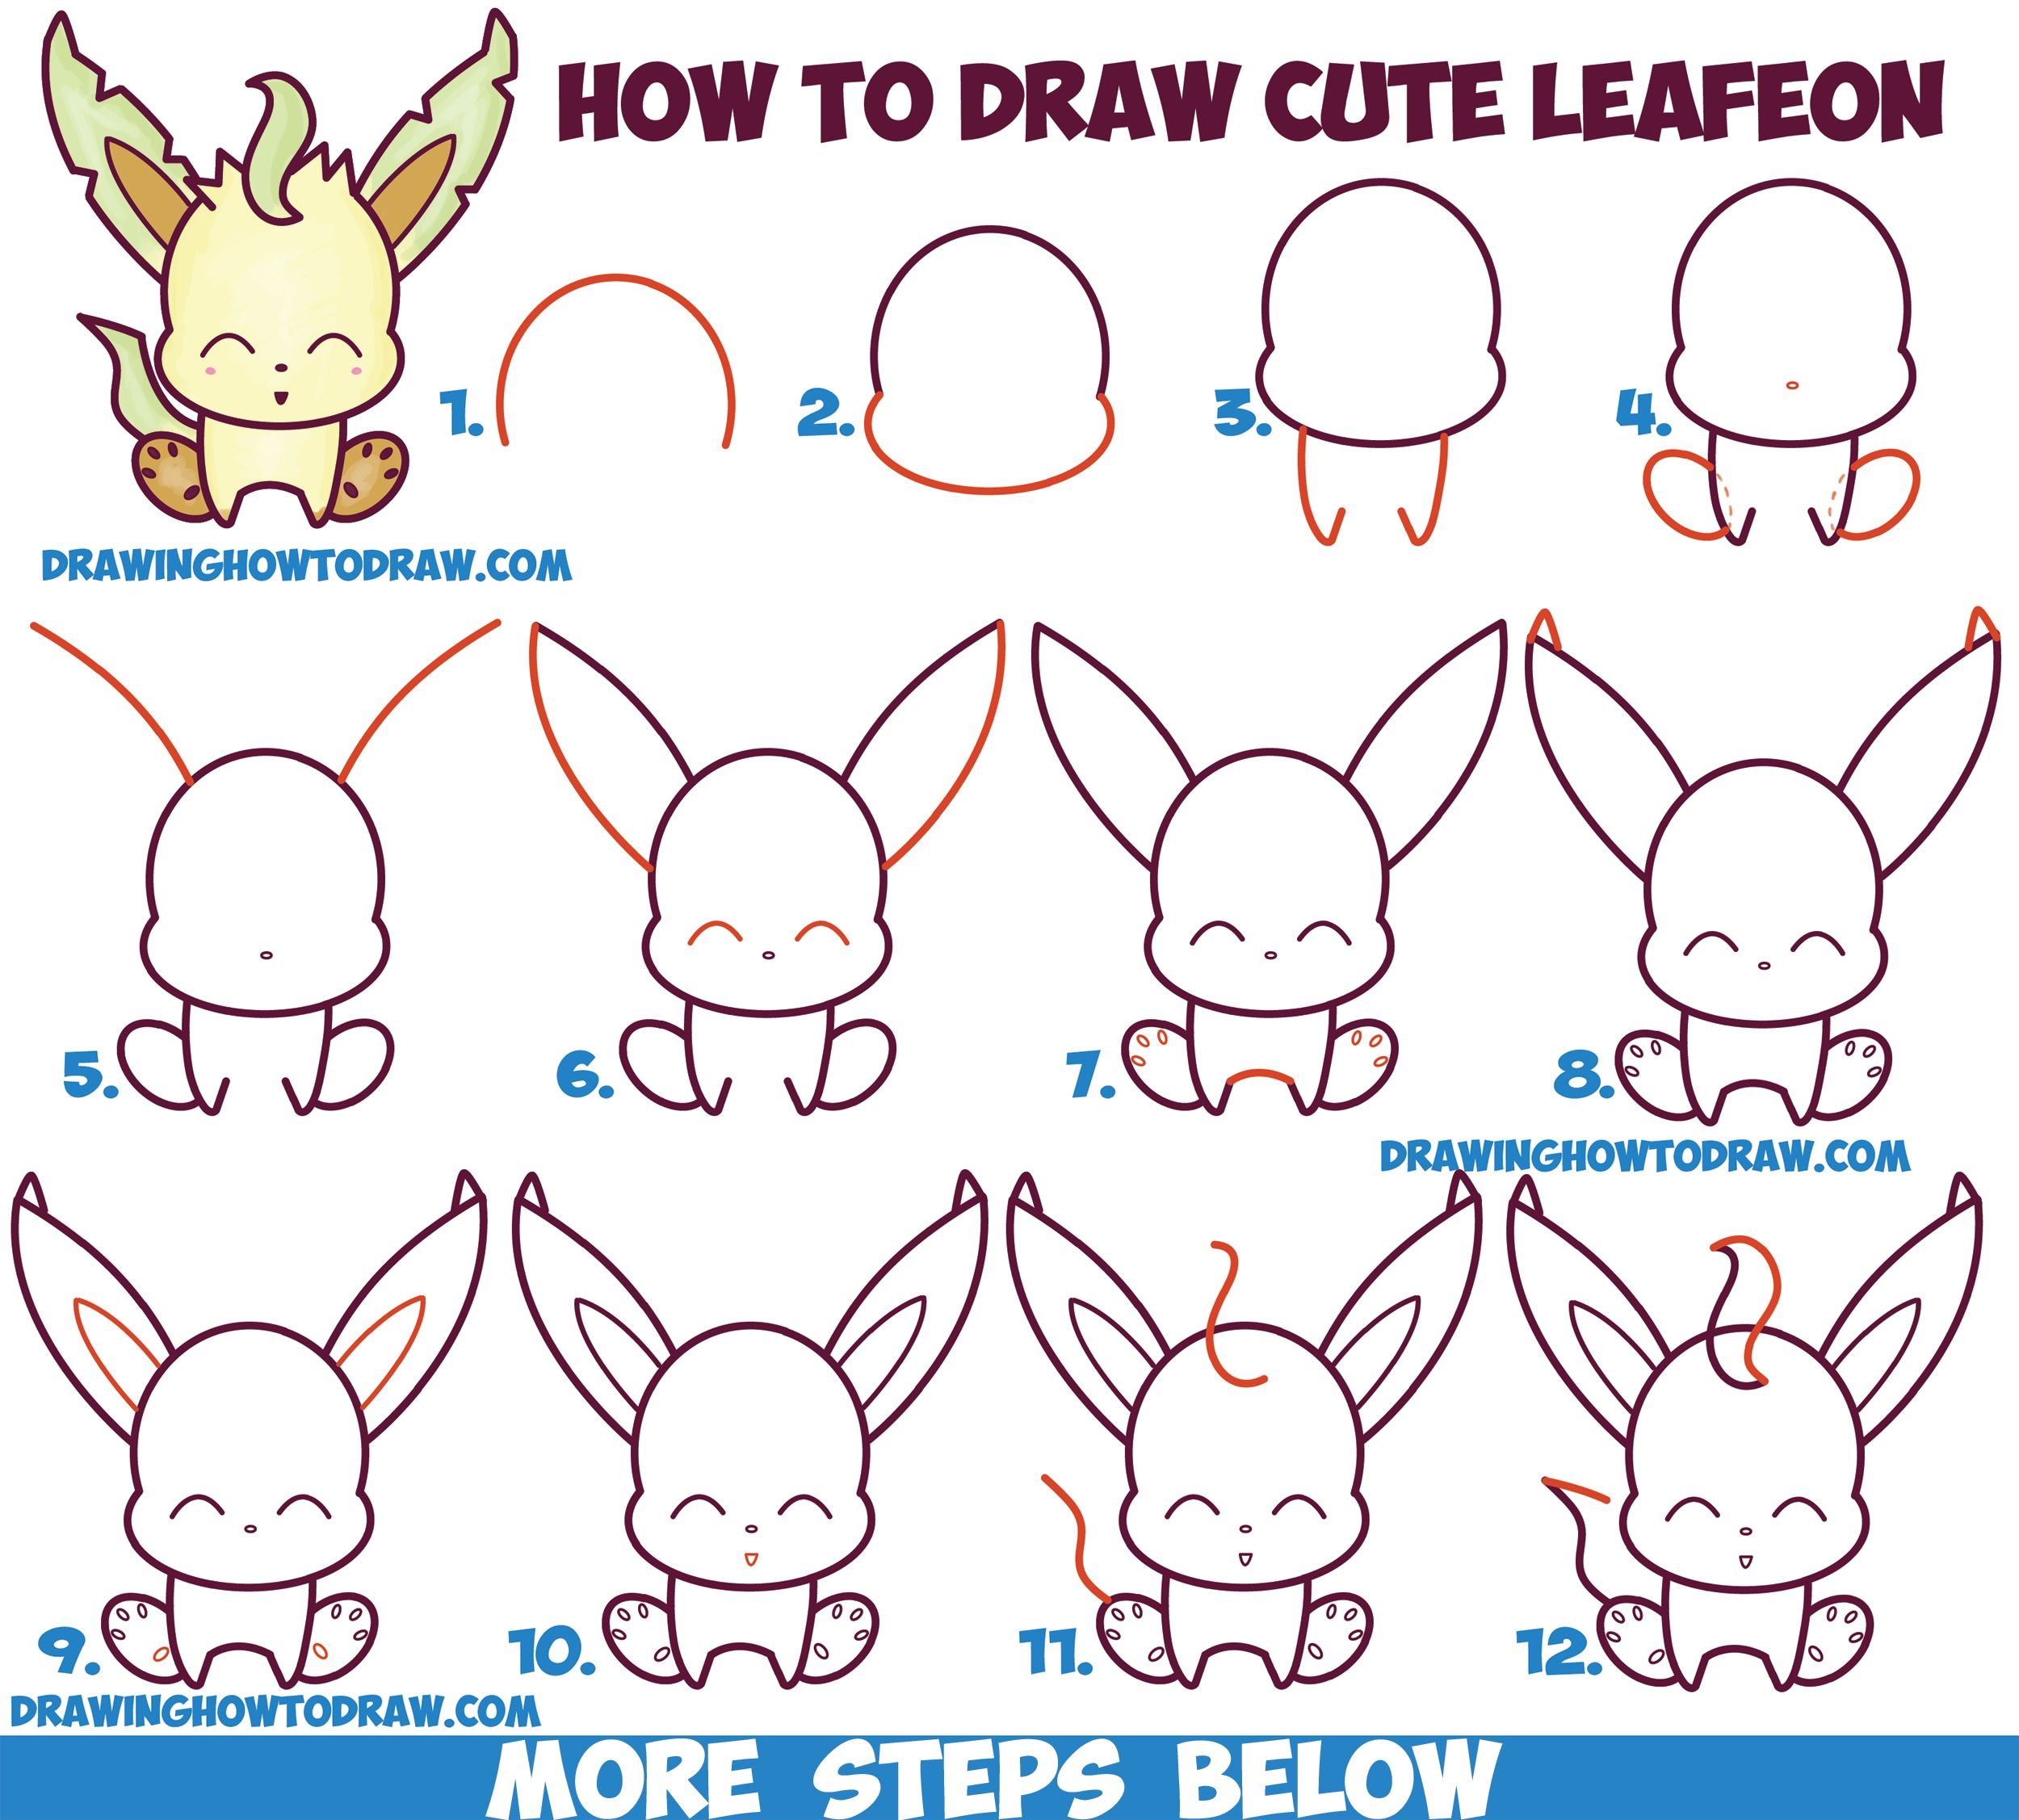 How to draw cute kawaii chibi leafeon from pokemon easy for How to draw things step by step